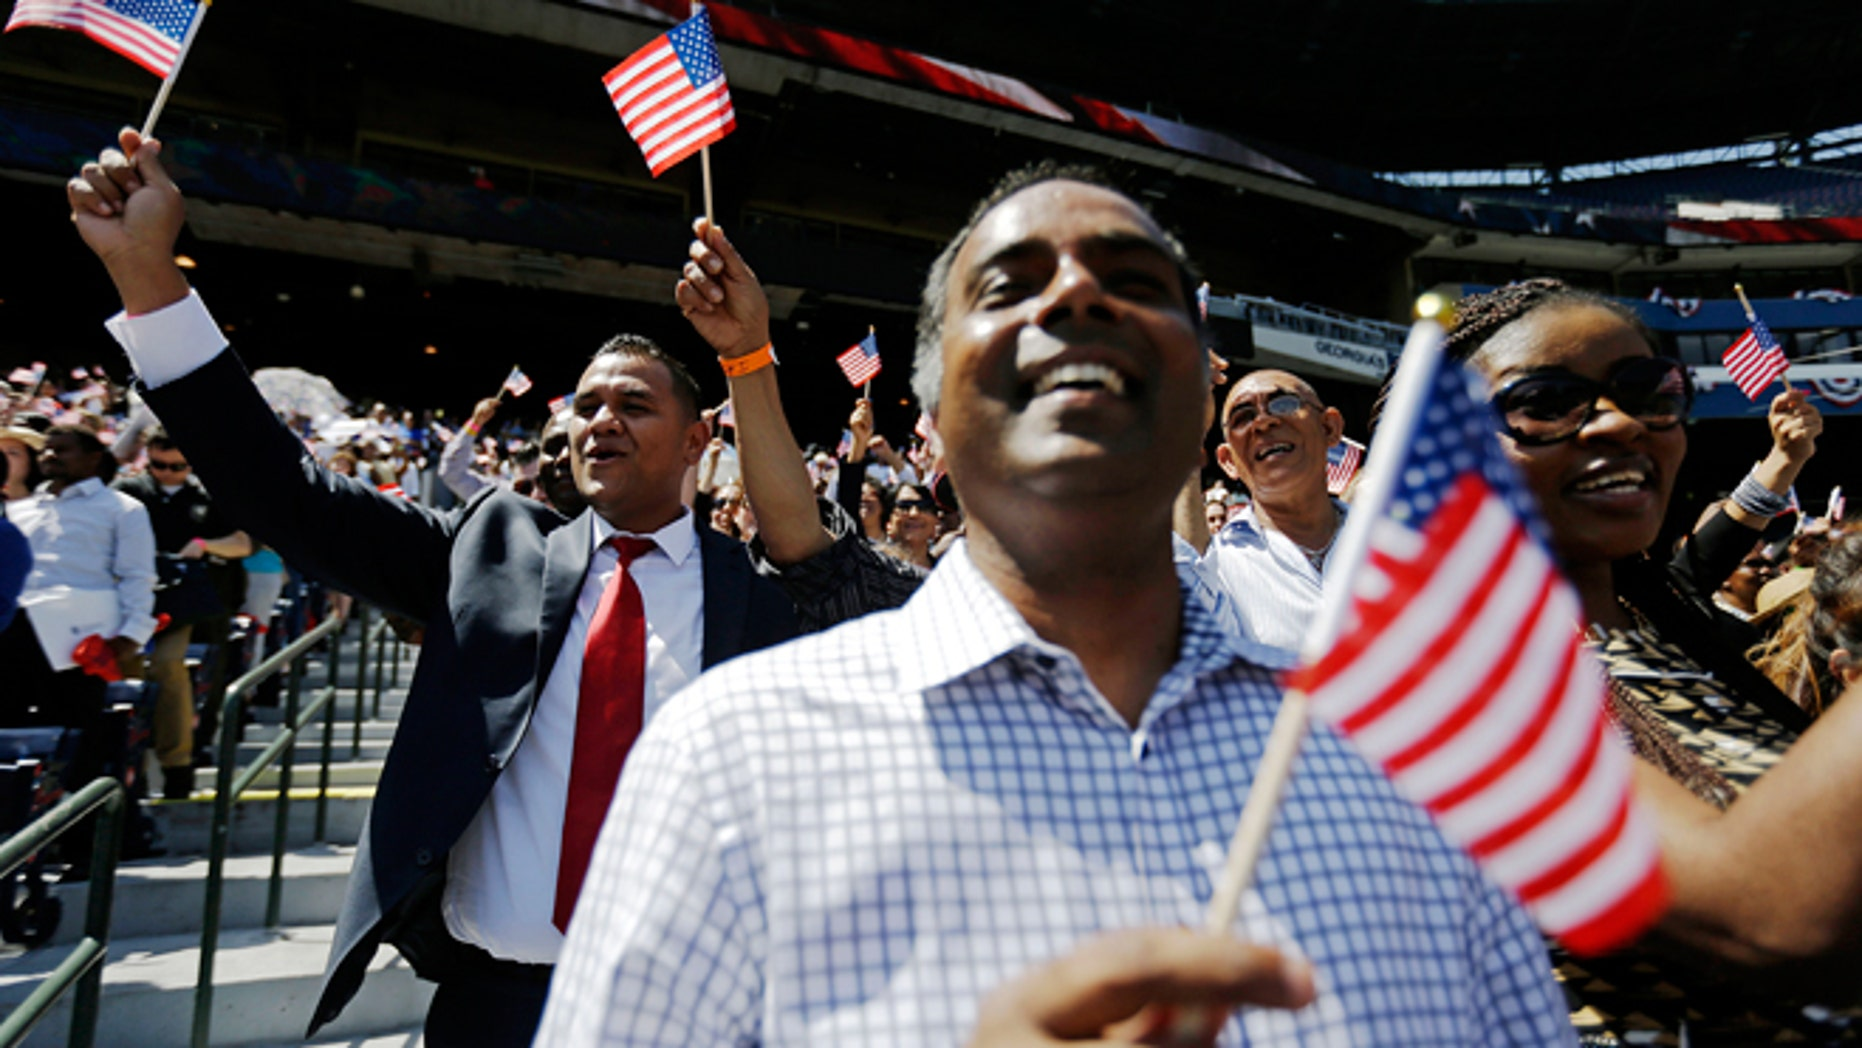 July 2, 2014: Newly-sworn in U.S. citizens cheer during a naturalization ceremony for more than 1,000 citizenship candidates at Turner Field, home of the Atlanta Braves baseball team, in Atlanta. U.S. Citizenship and Immigration Services welcomed 1,094 new citizens from 81 countries as part of their annual Independence Day celebration marking the nation's 238th birthday this year.